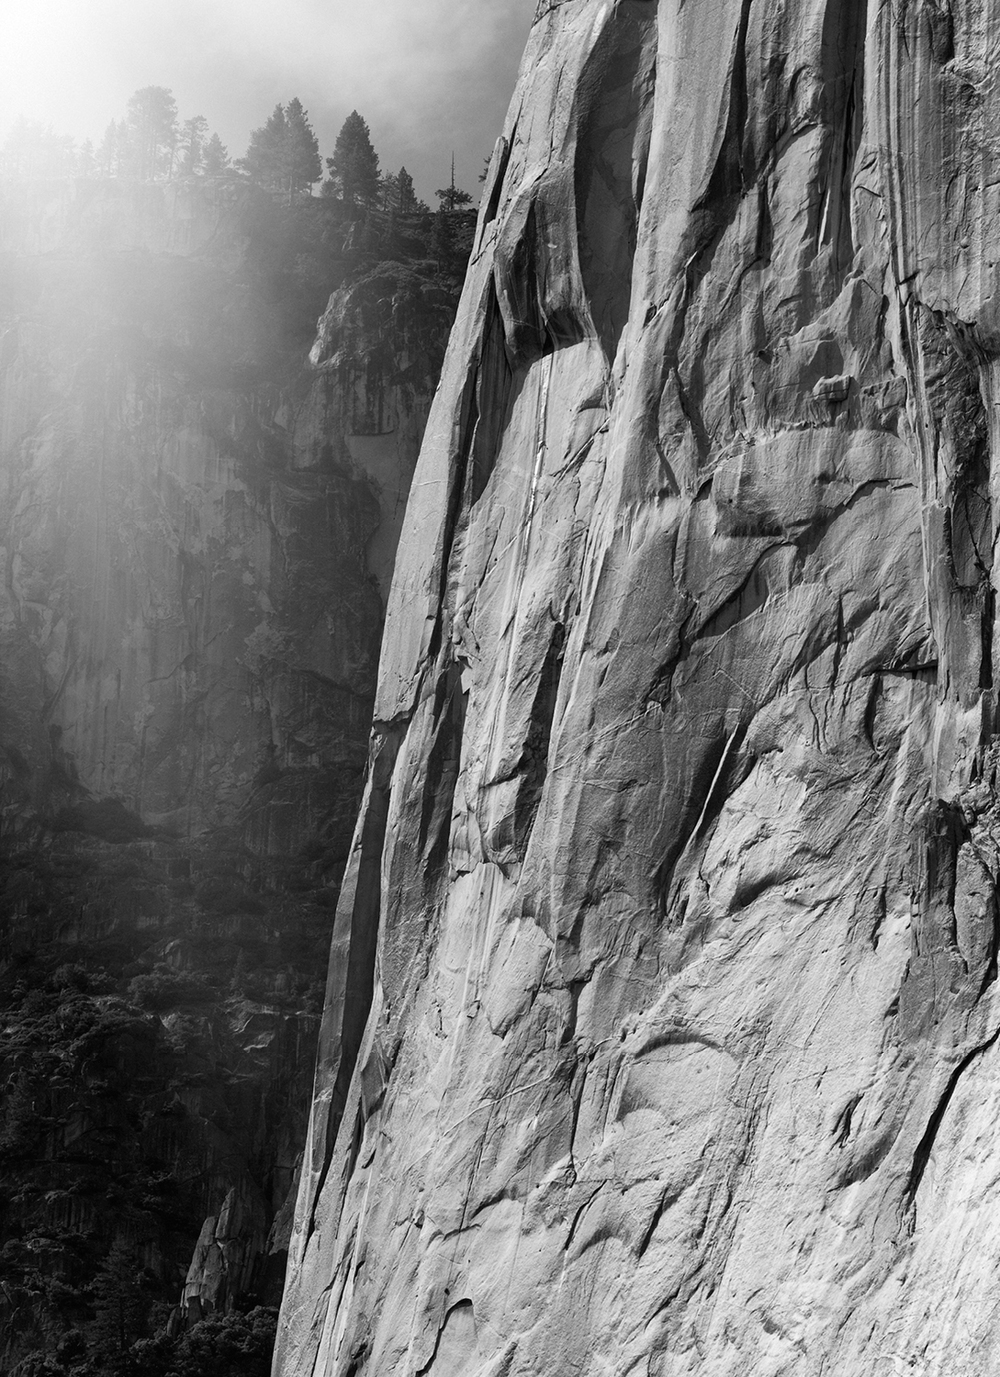 EL CAPITAN'S GRANITE WALL